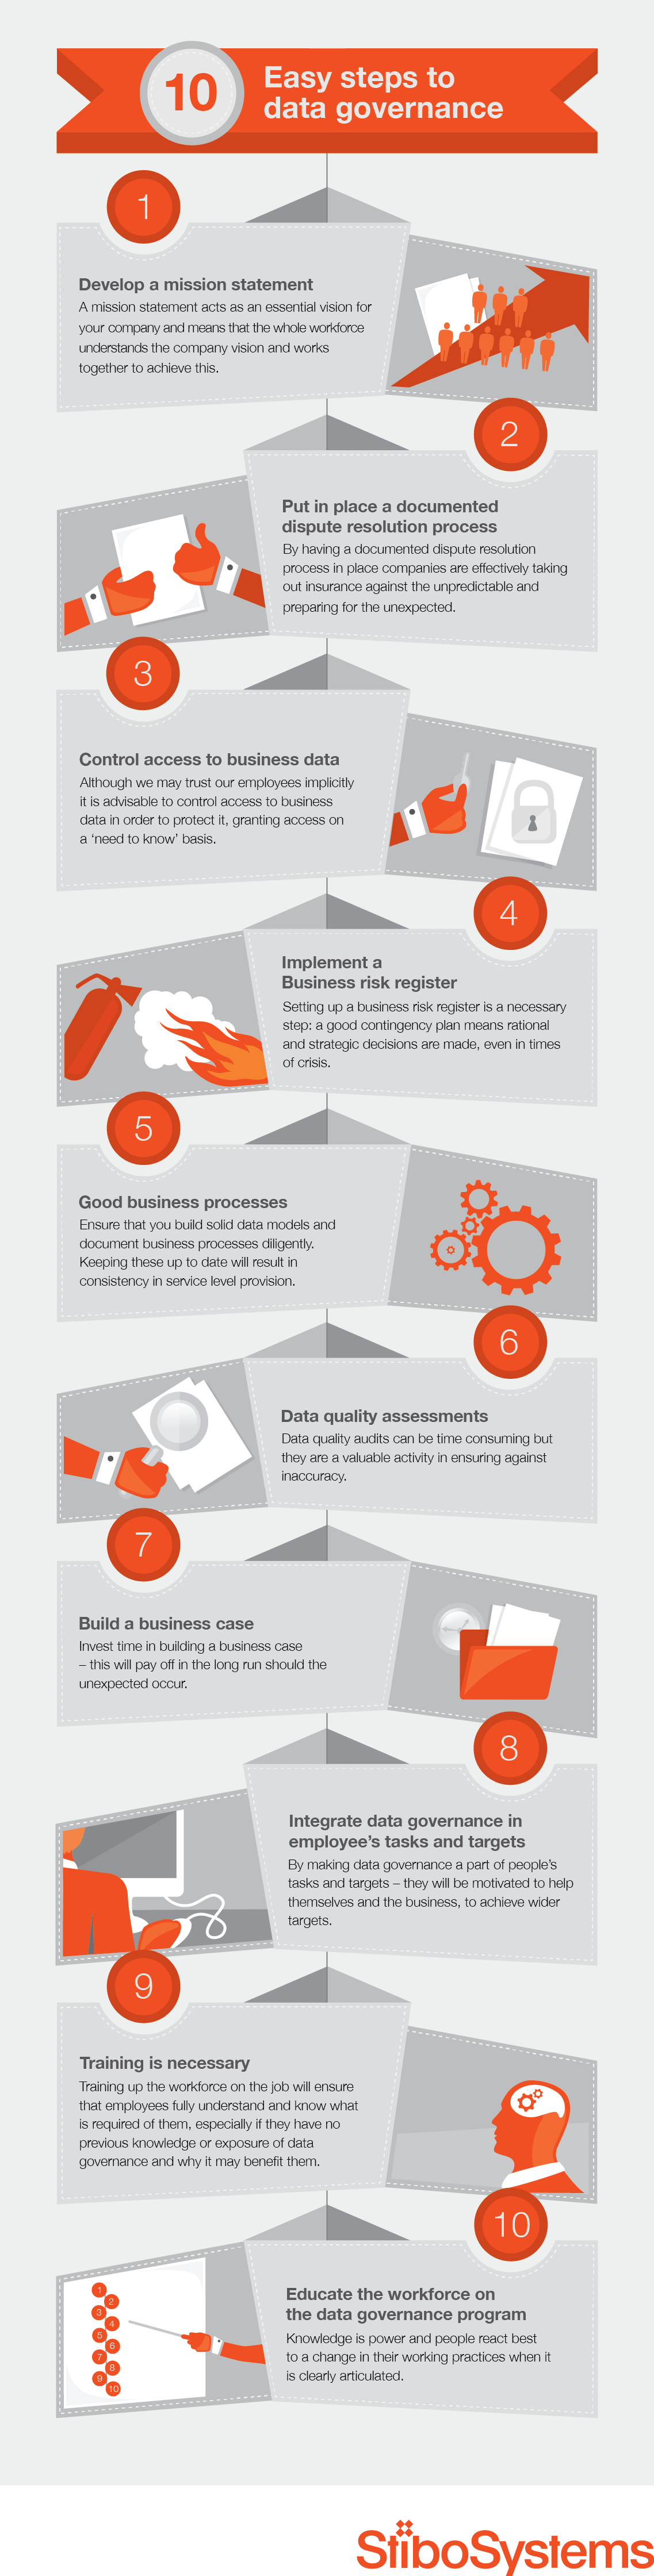 Infographic_10 Easy Steps to Data Governance_Stibo Systems_UK